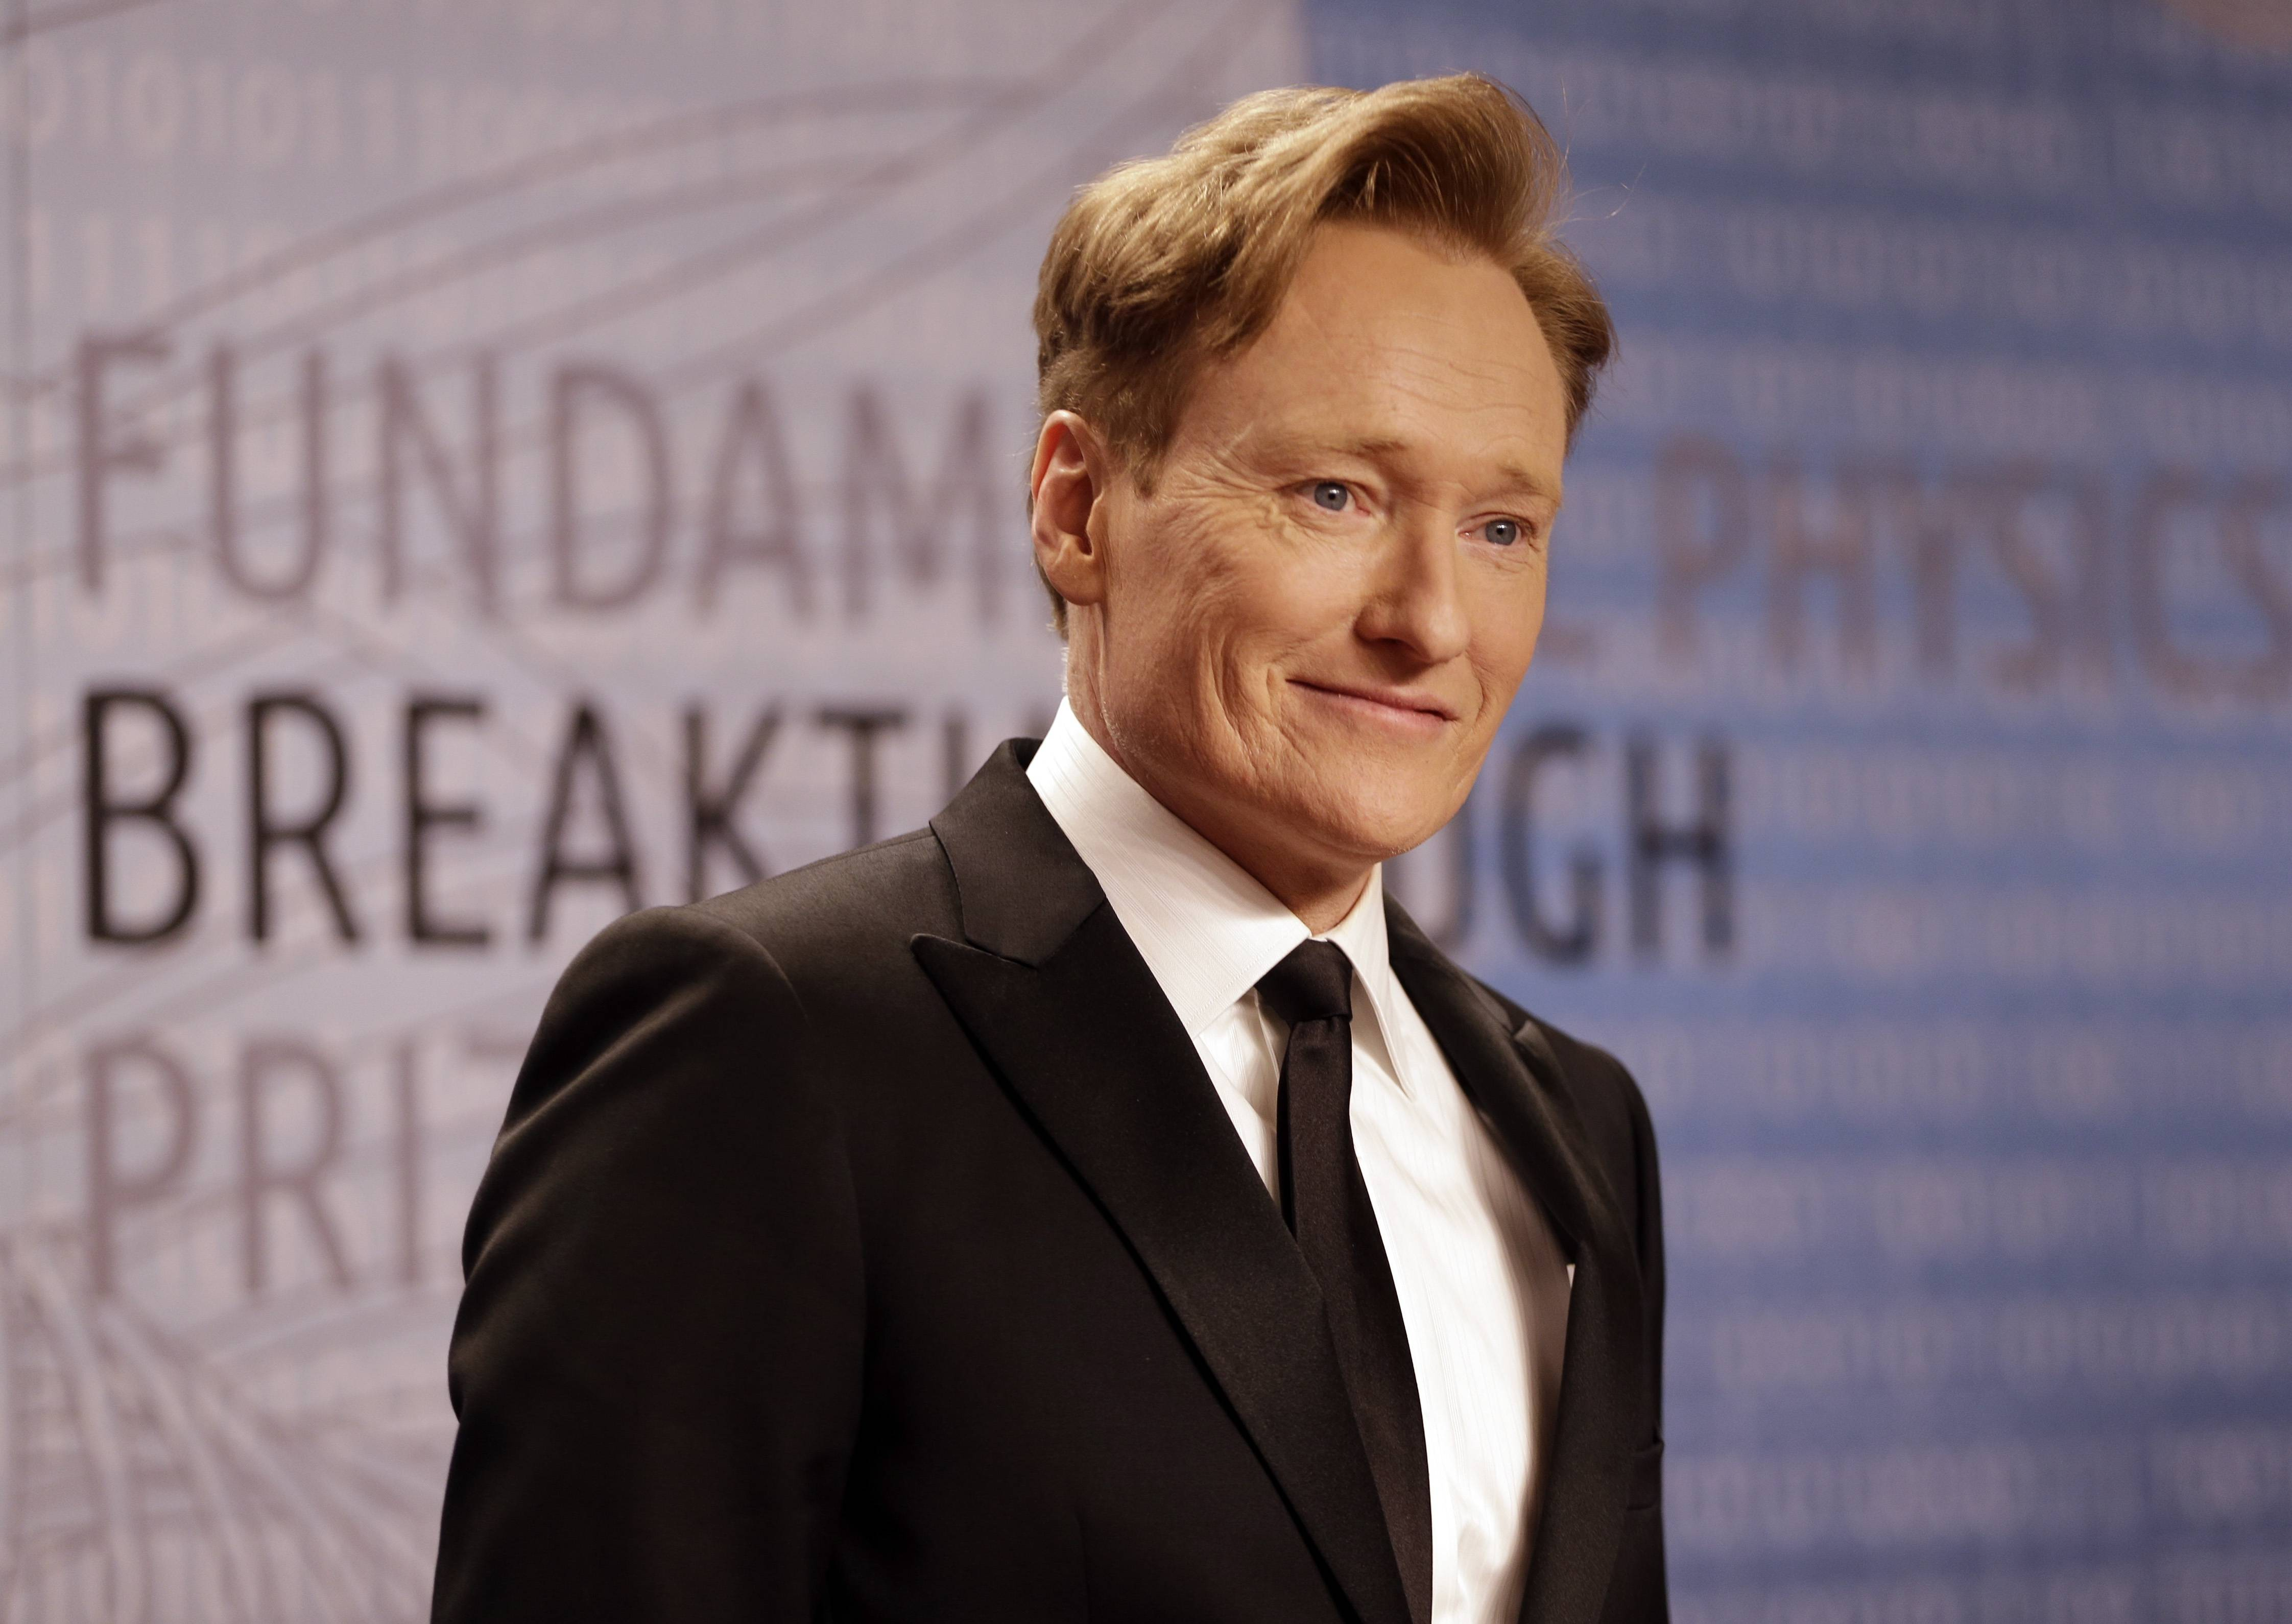 Conan O'Brien will be sticking around with his late-night hour through 2018.